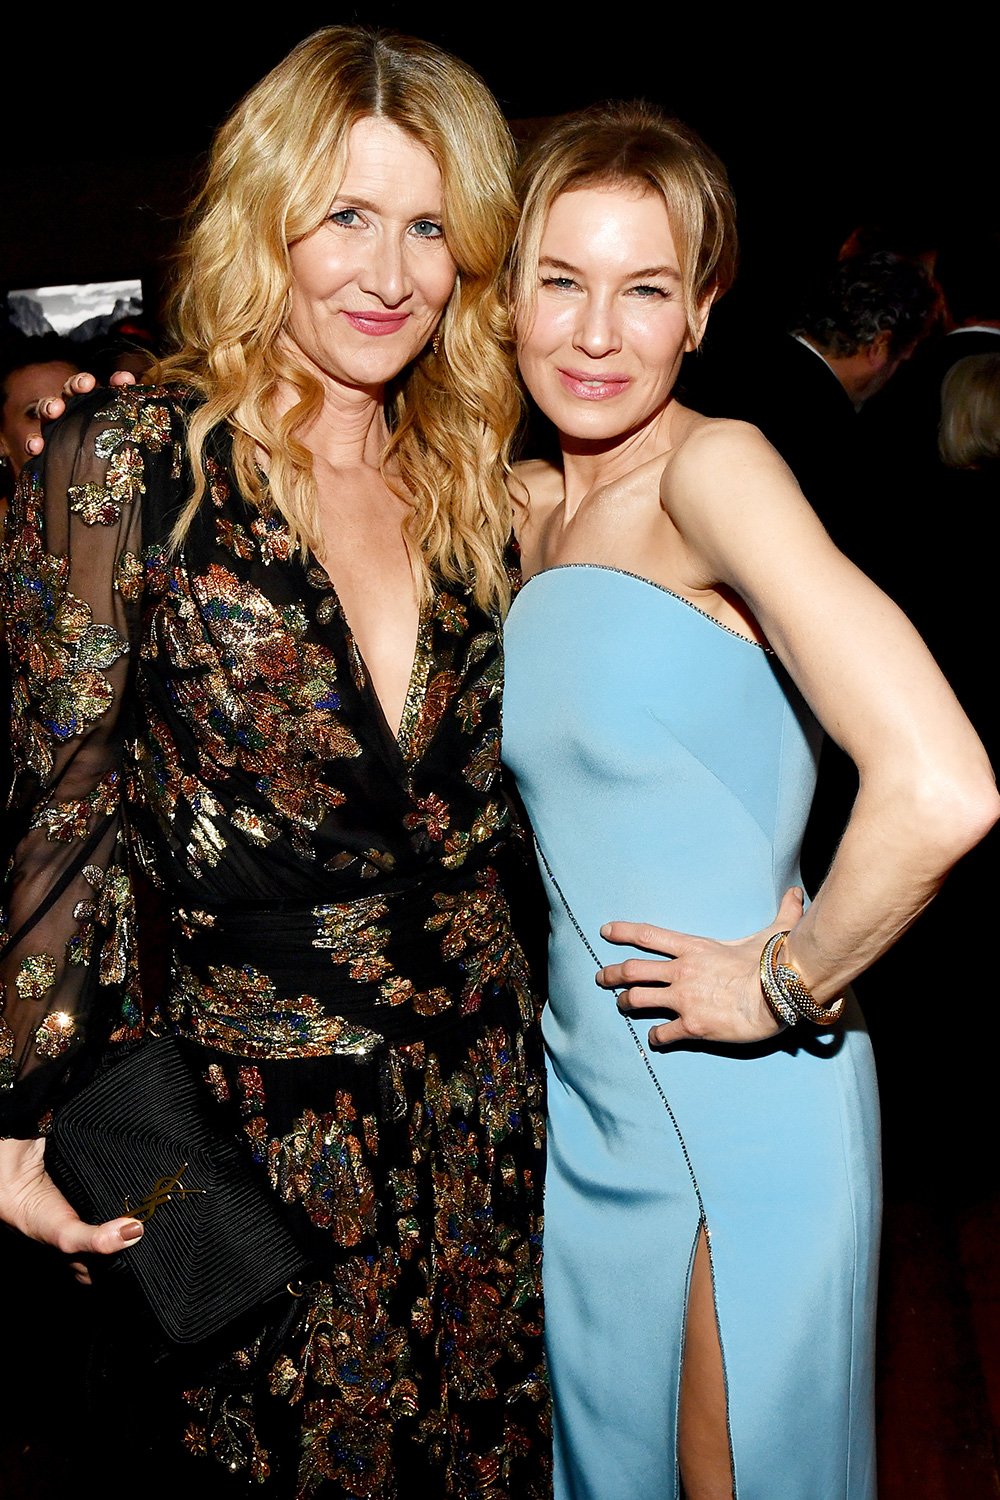 Laura Dern and Renee Zellweger HFPA Golden Globe Awards Screening and After Party, Inside, Los Angeles, USA - 05 Jan 2020